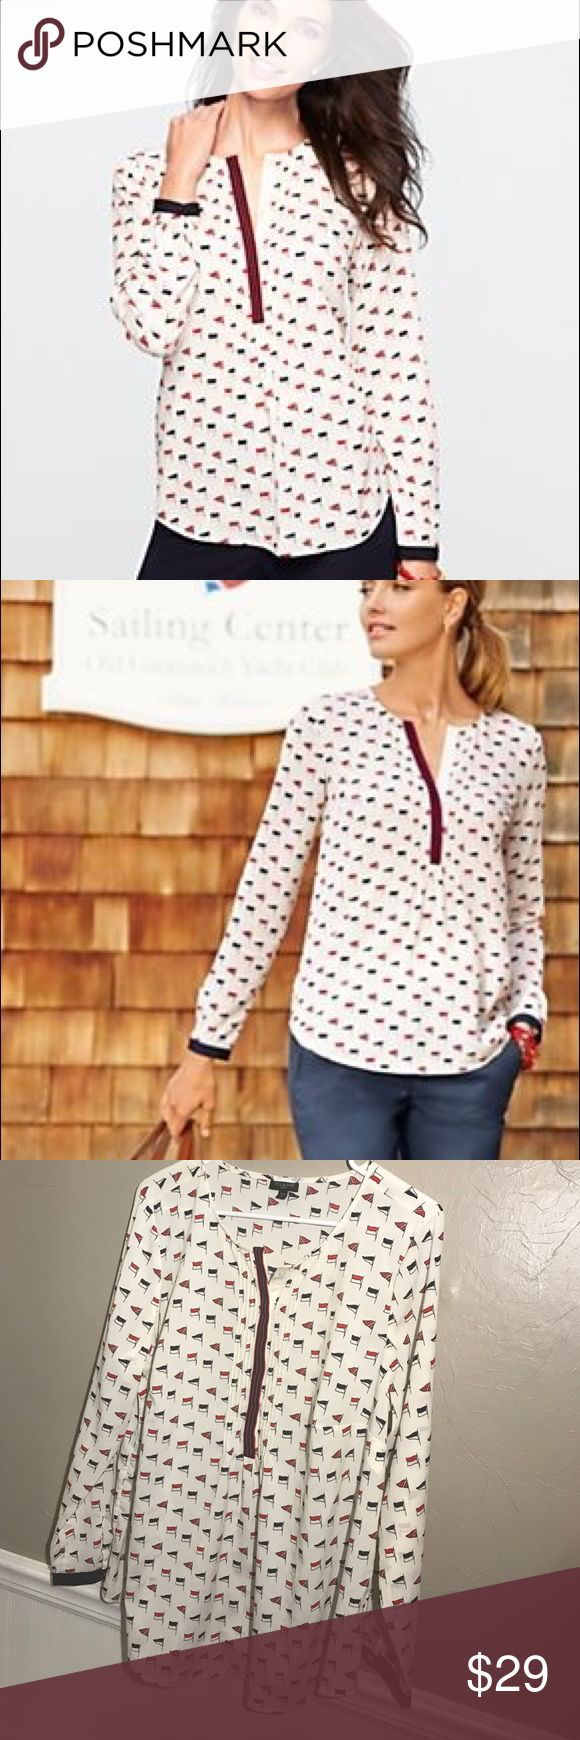 Talbots Nautical Flag Pintuck Blouse Henley NWOT Talbots Nautical Flag Pin tucked Henley Blouse NWOT • great red white and Blue Nautical Blouse  • no trades Talbots Tops Blouses